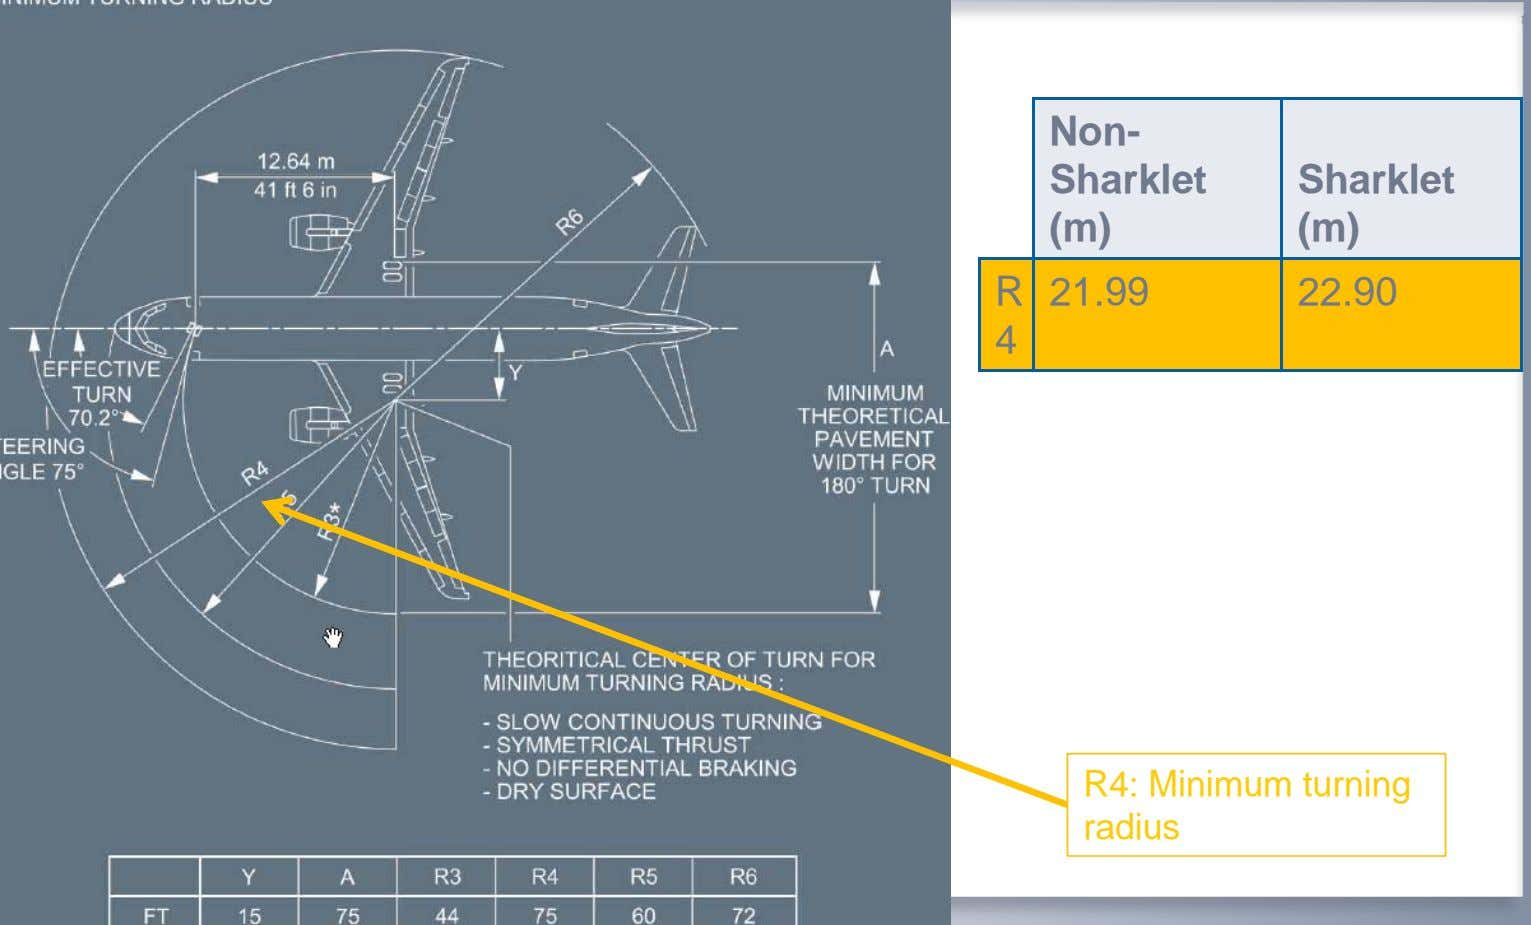 Non- Sharklet Sharklet (m) (m) R 21.99 22.90 4 R4: Minimum turning radius